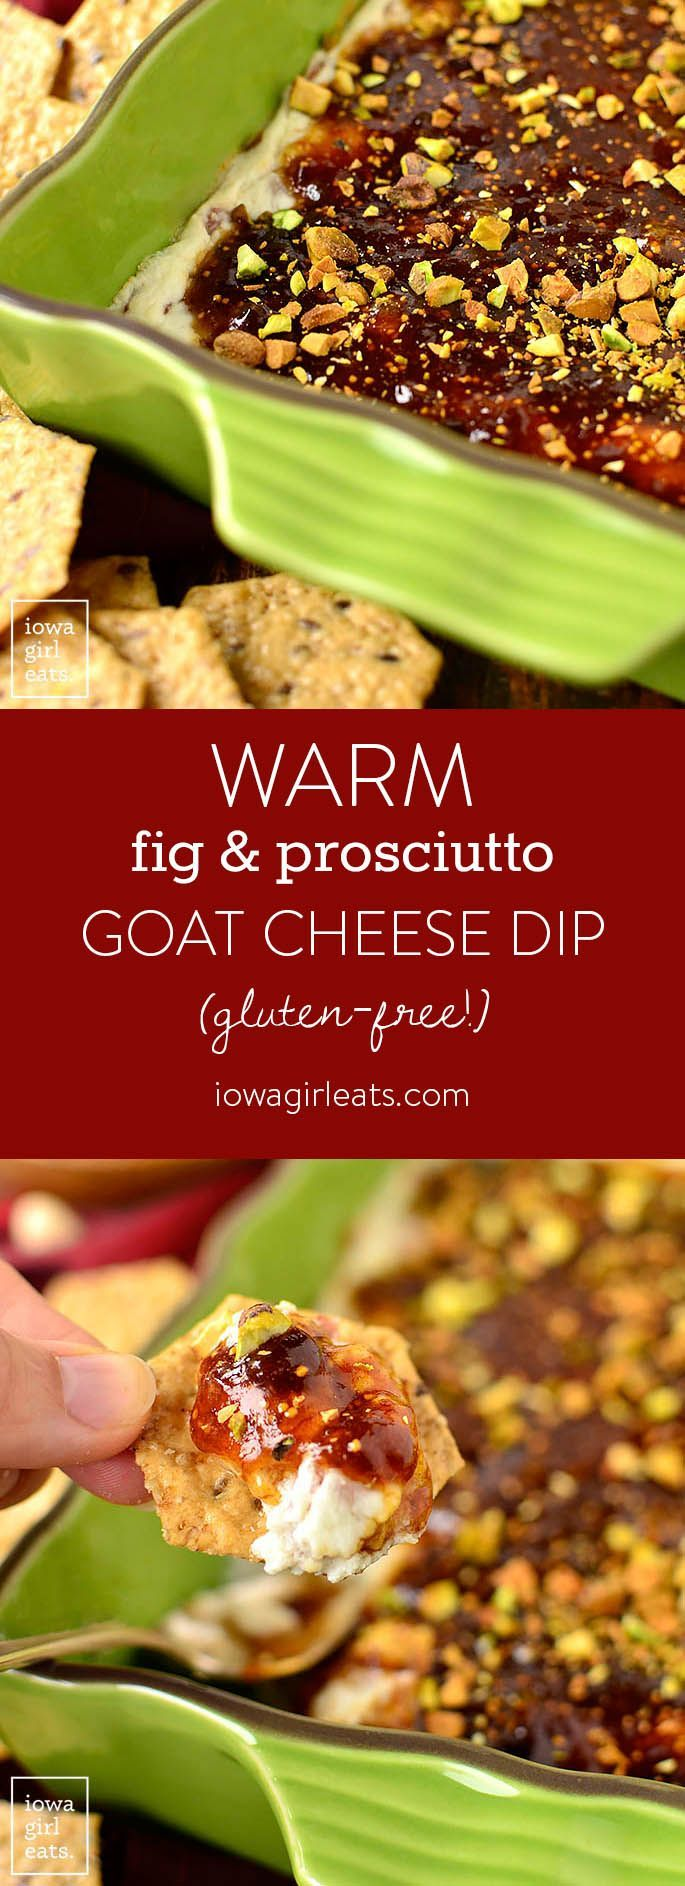 Warm Fig and Prosciutto Goat Cheese Dip is an irresistible gluten-free dip recipe! Layers of goat cheese and prosciutto, fig jam, and pistachios is a hit at parties. | iowagirleats.com #glutenfree